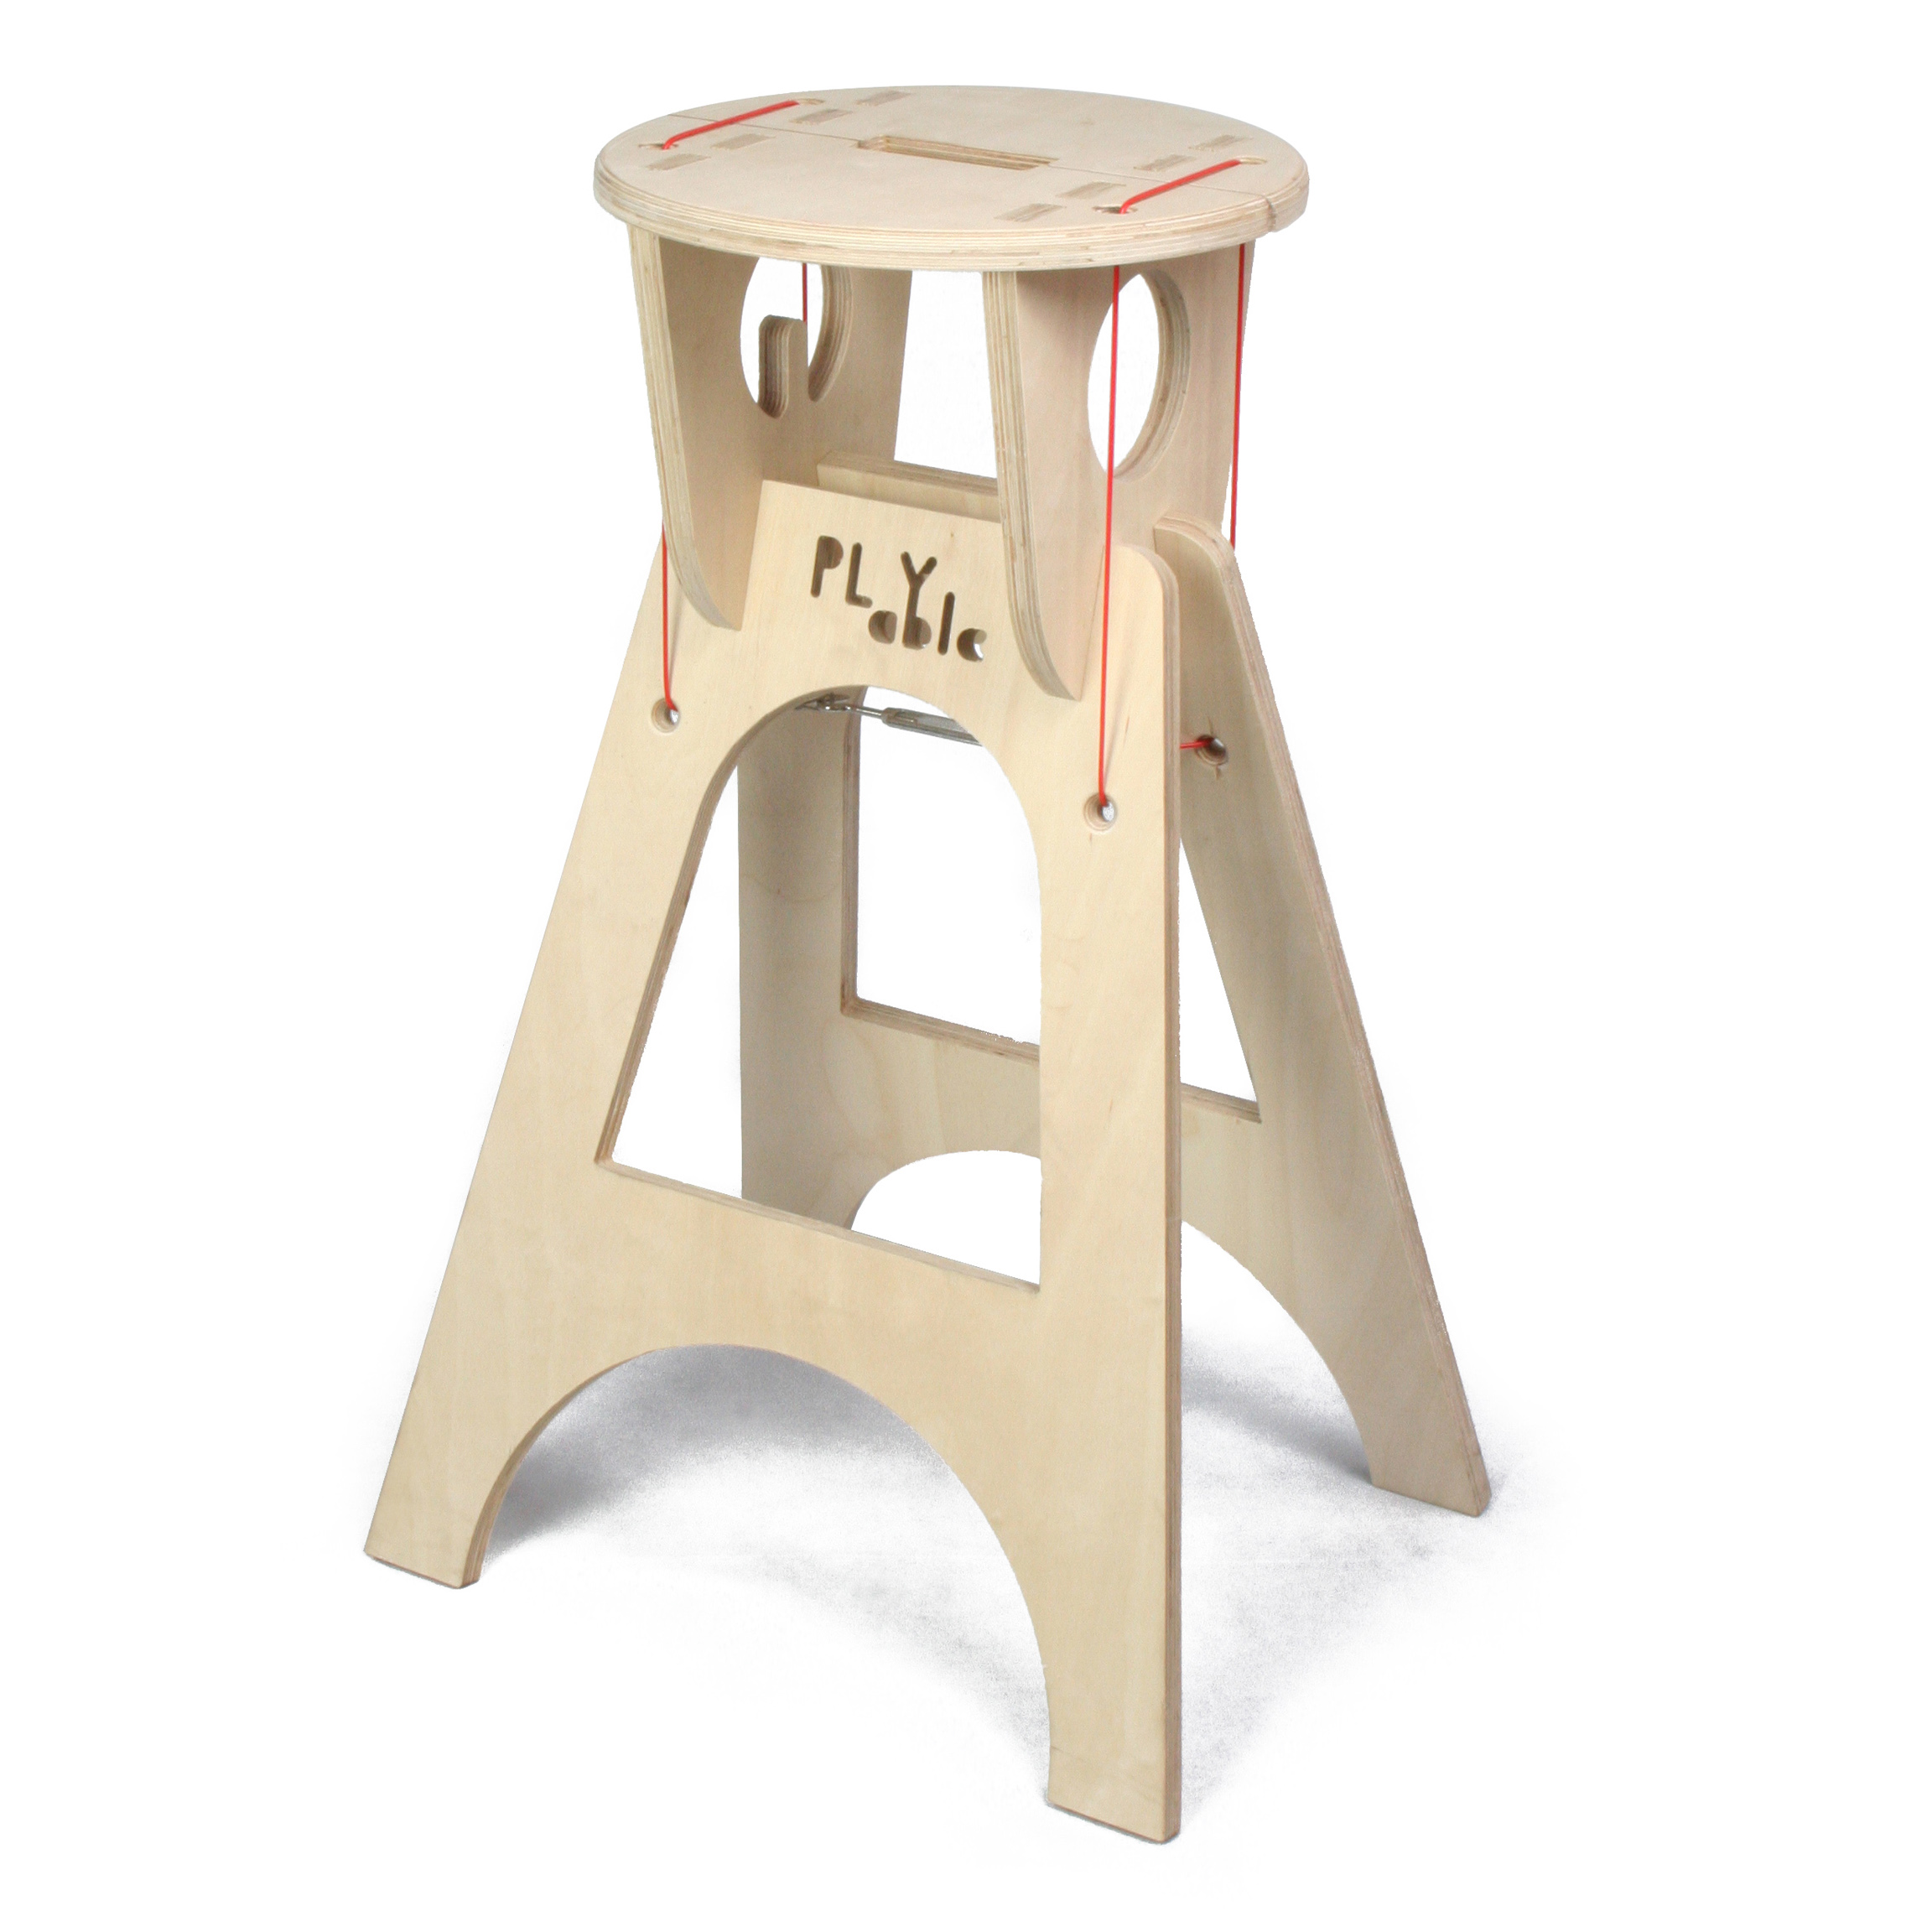 Enjoyable 8 X 4 X 6 Stool Gmtry Best Dining Table And Chair Ideas Images Gmtryco